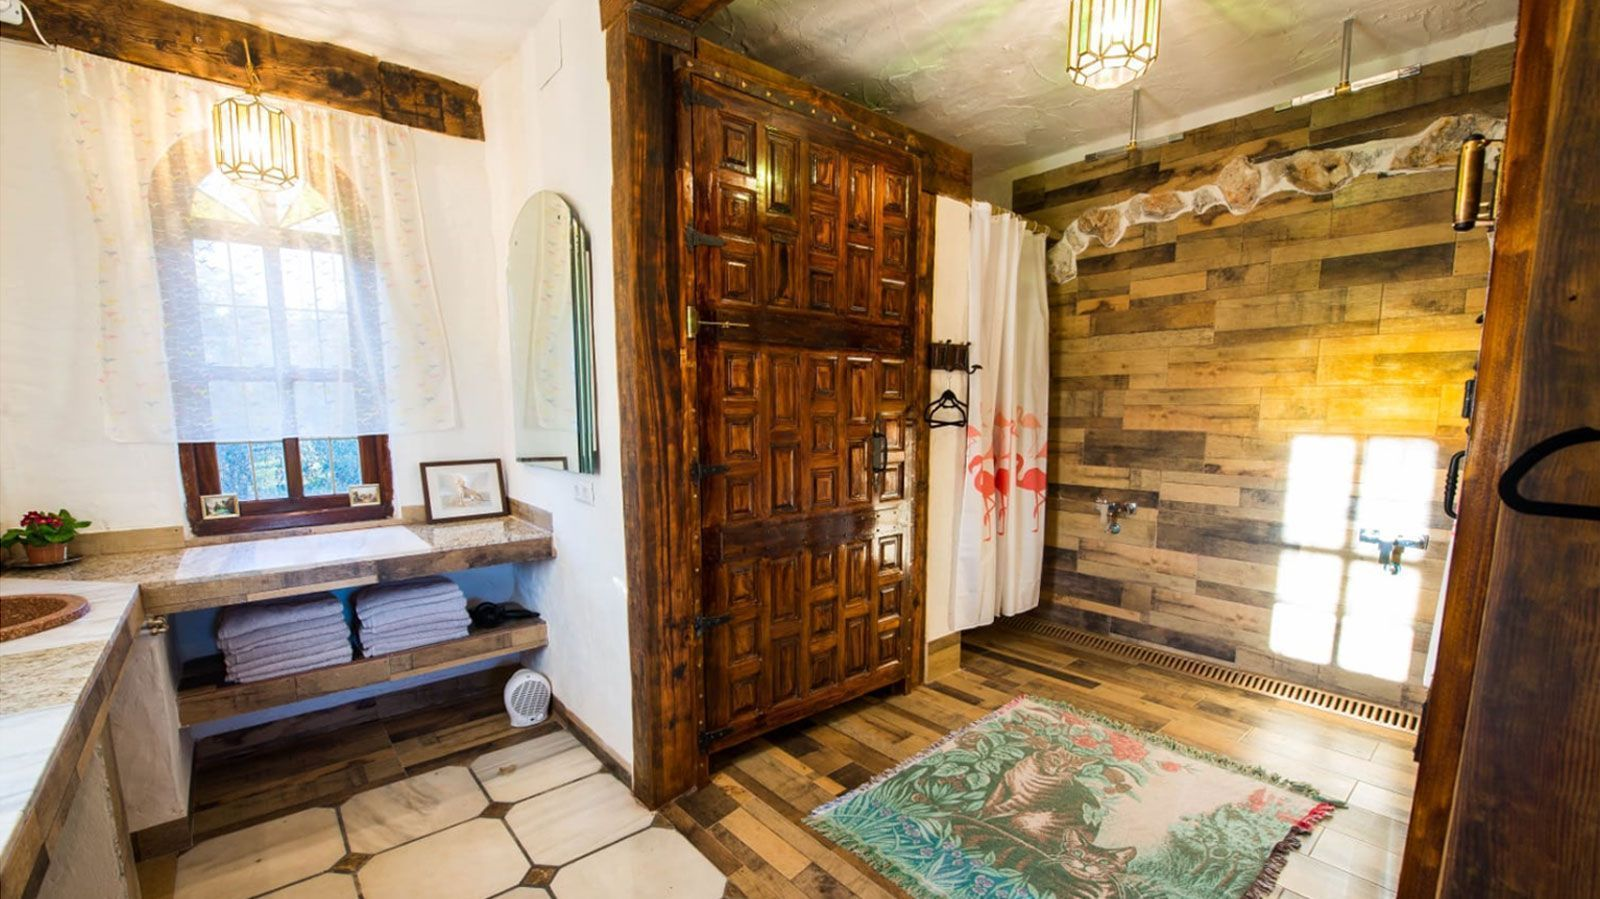 Rustic design bathroom in Andalusia house